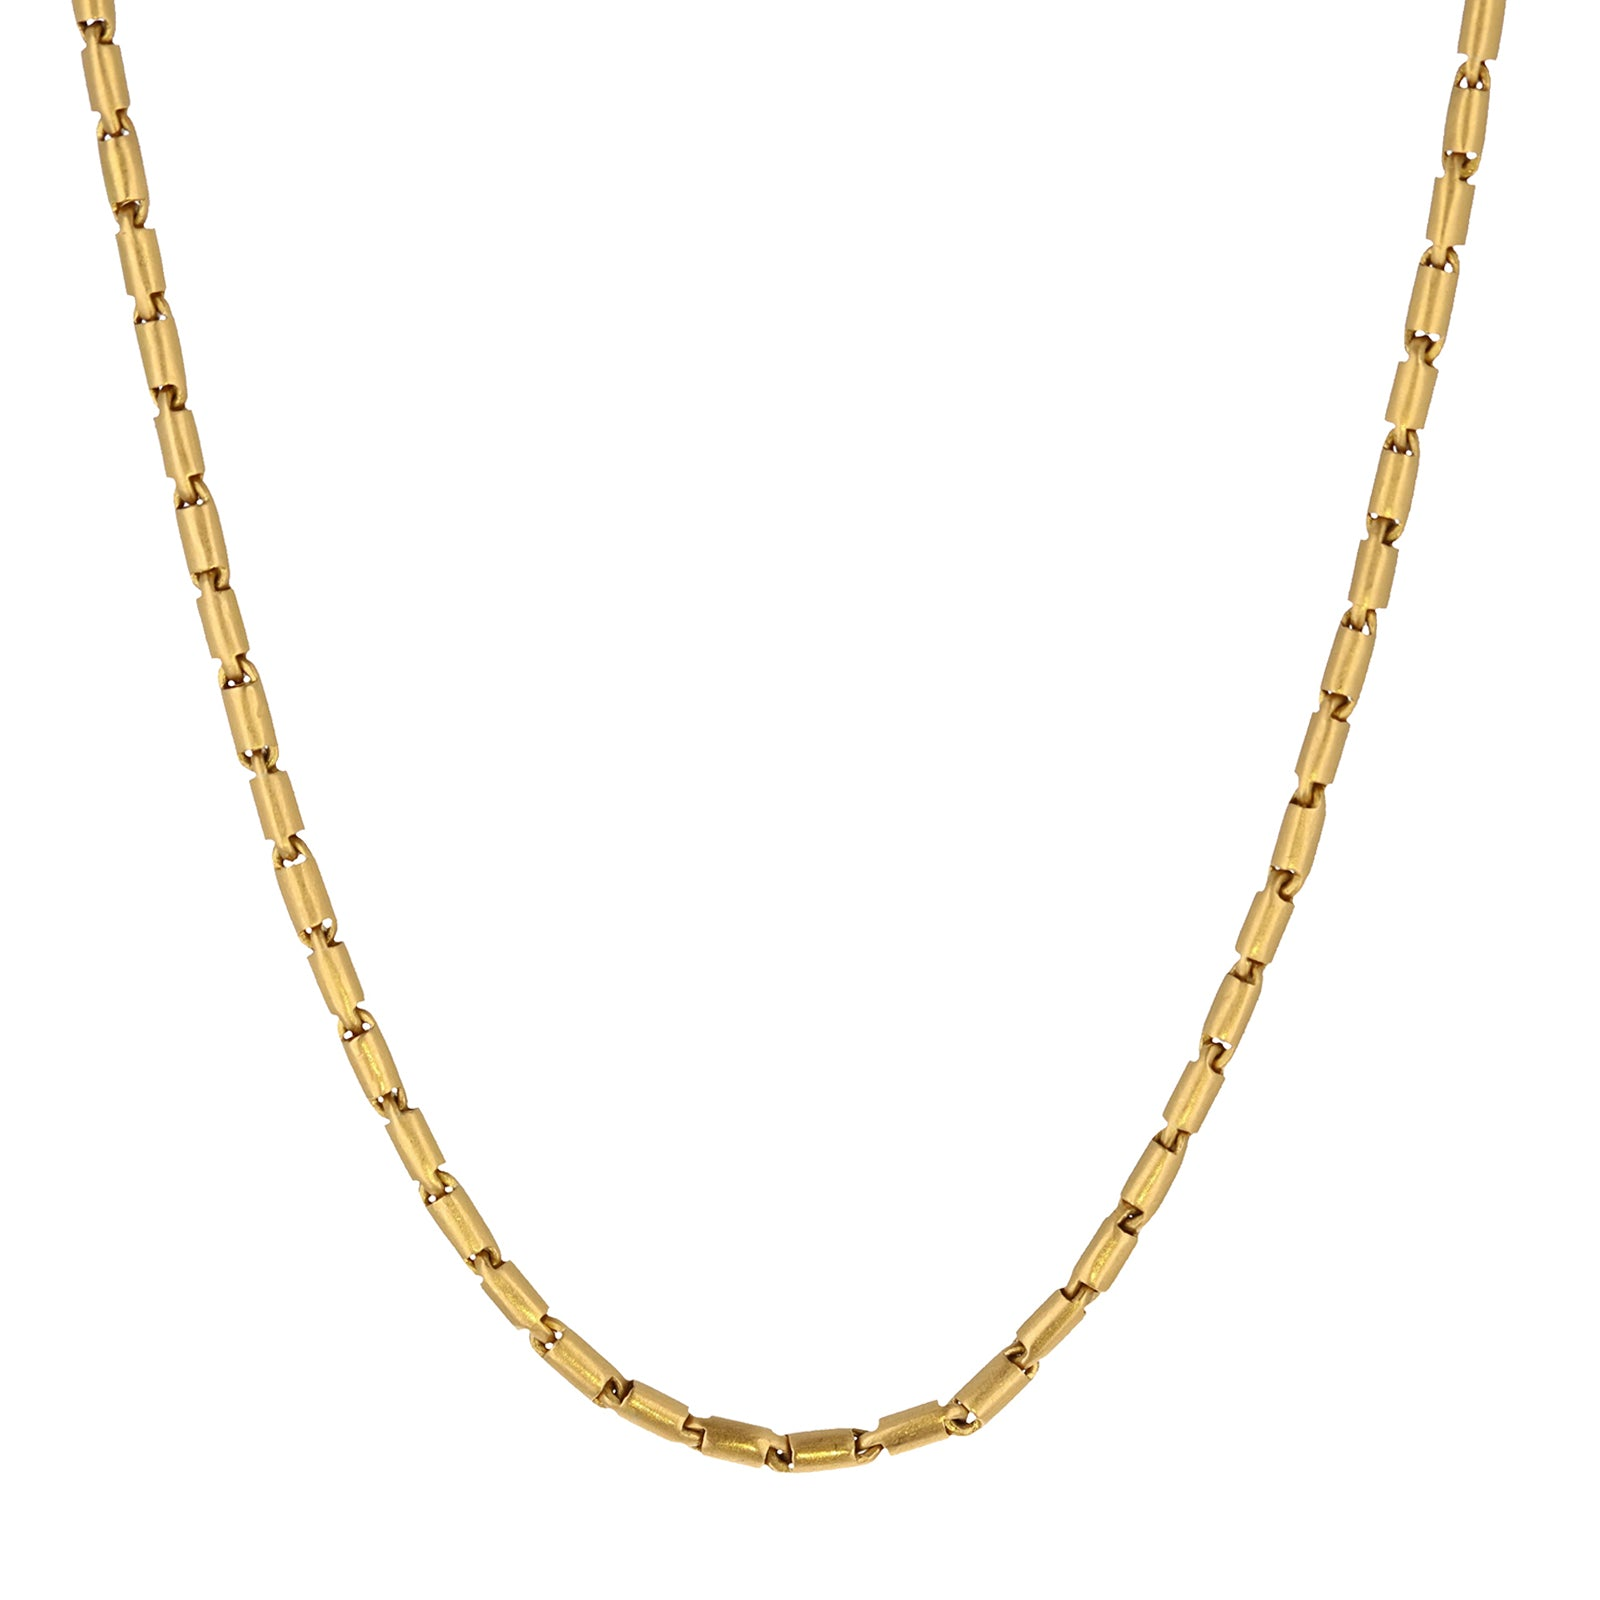 Eli Halili Cartouche Gold Bar Links Necklace - Necklaces - Broken English Jewelry